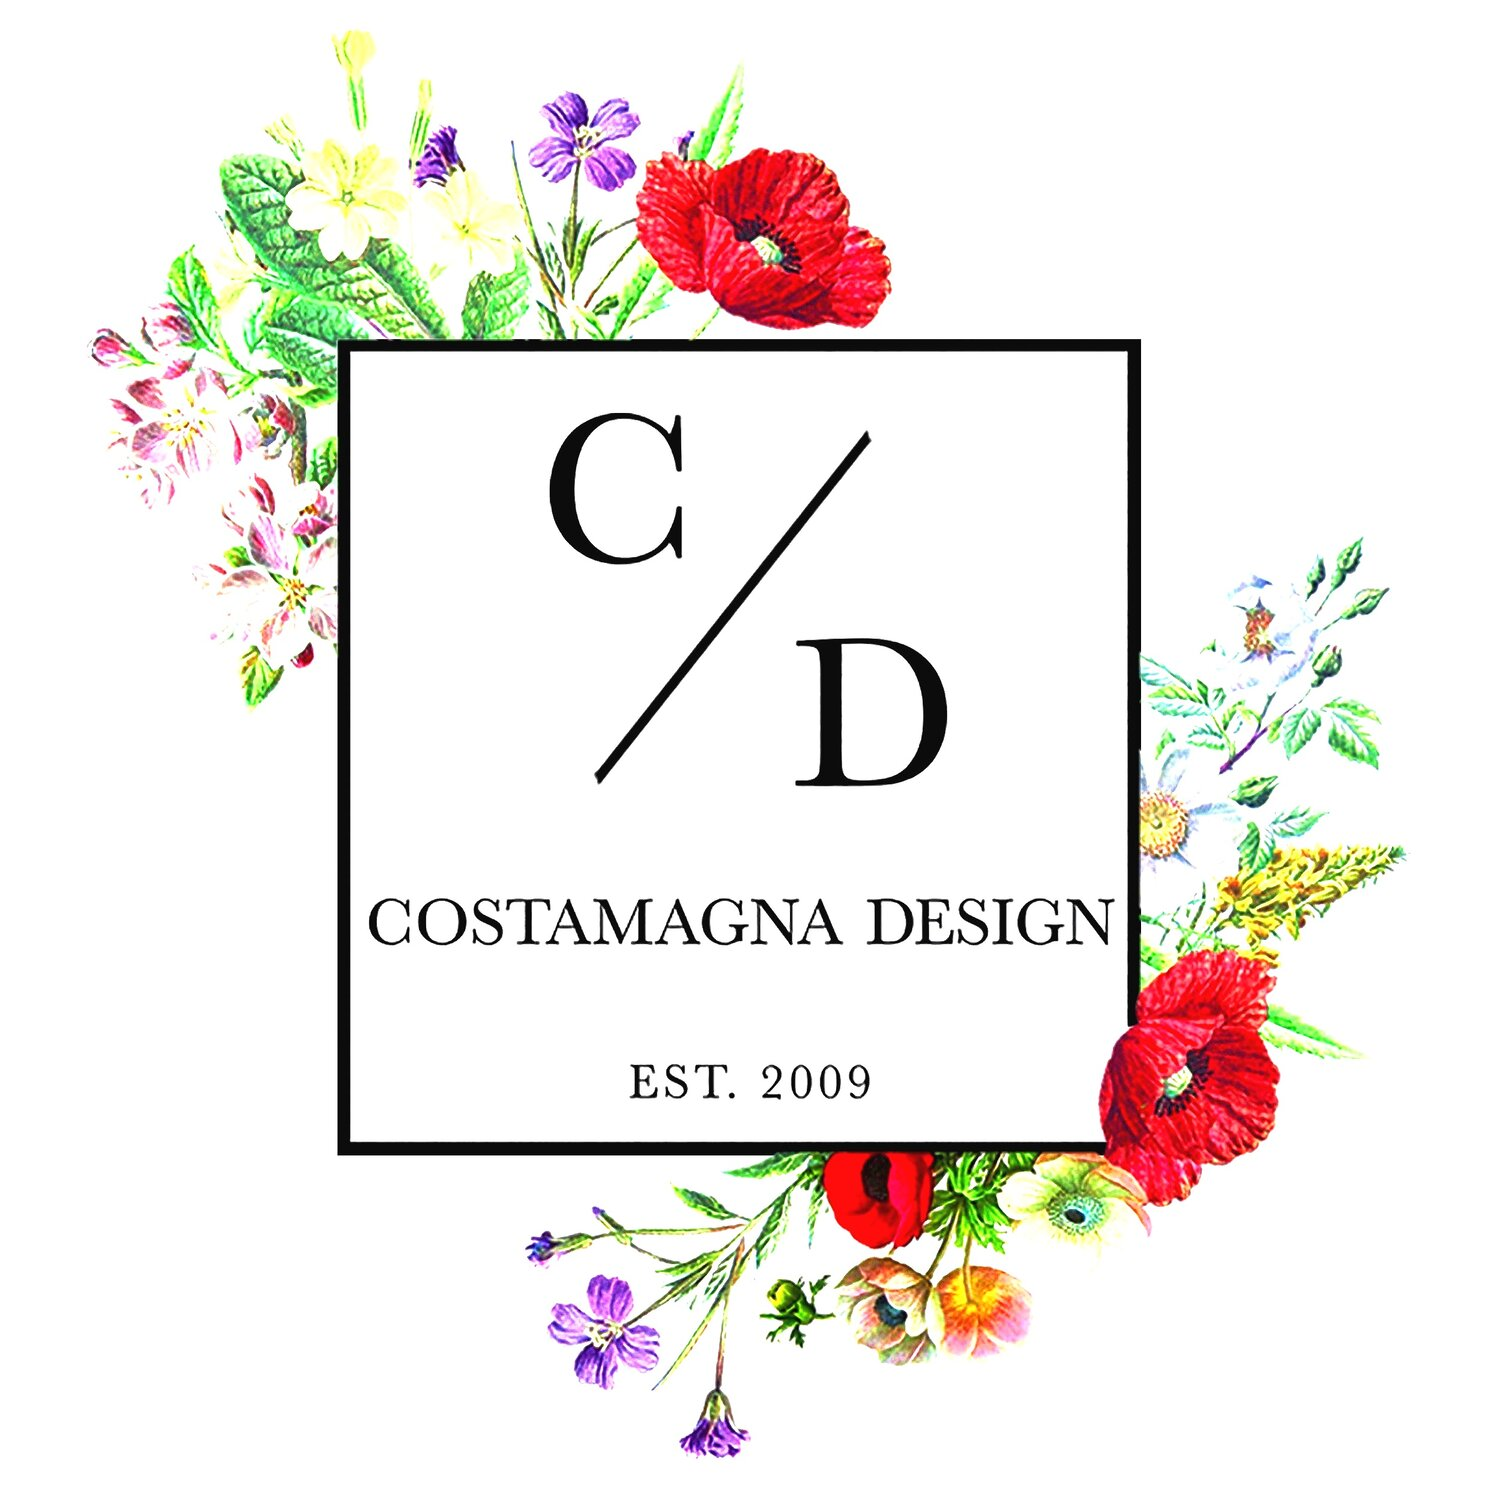 Costamagna Design